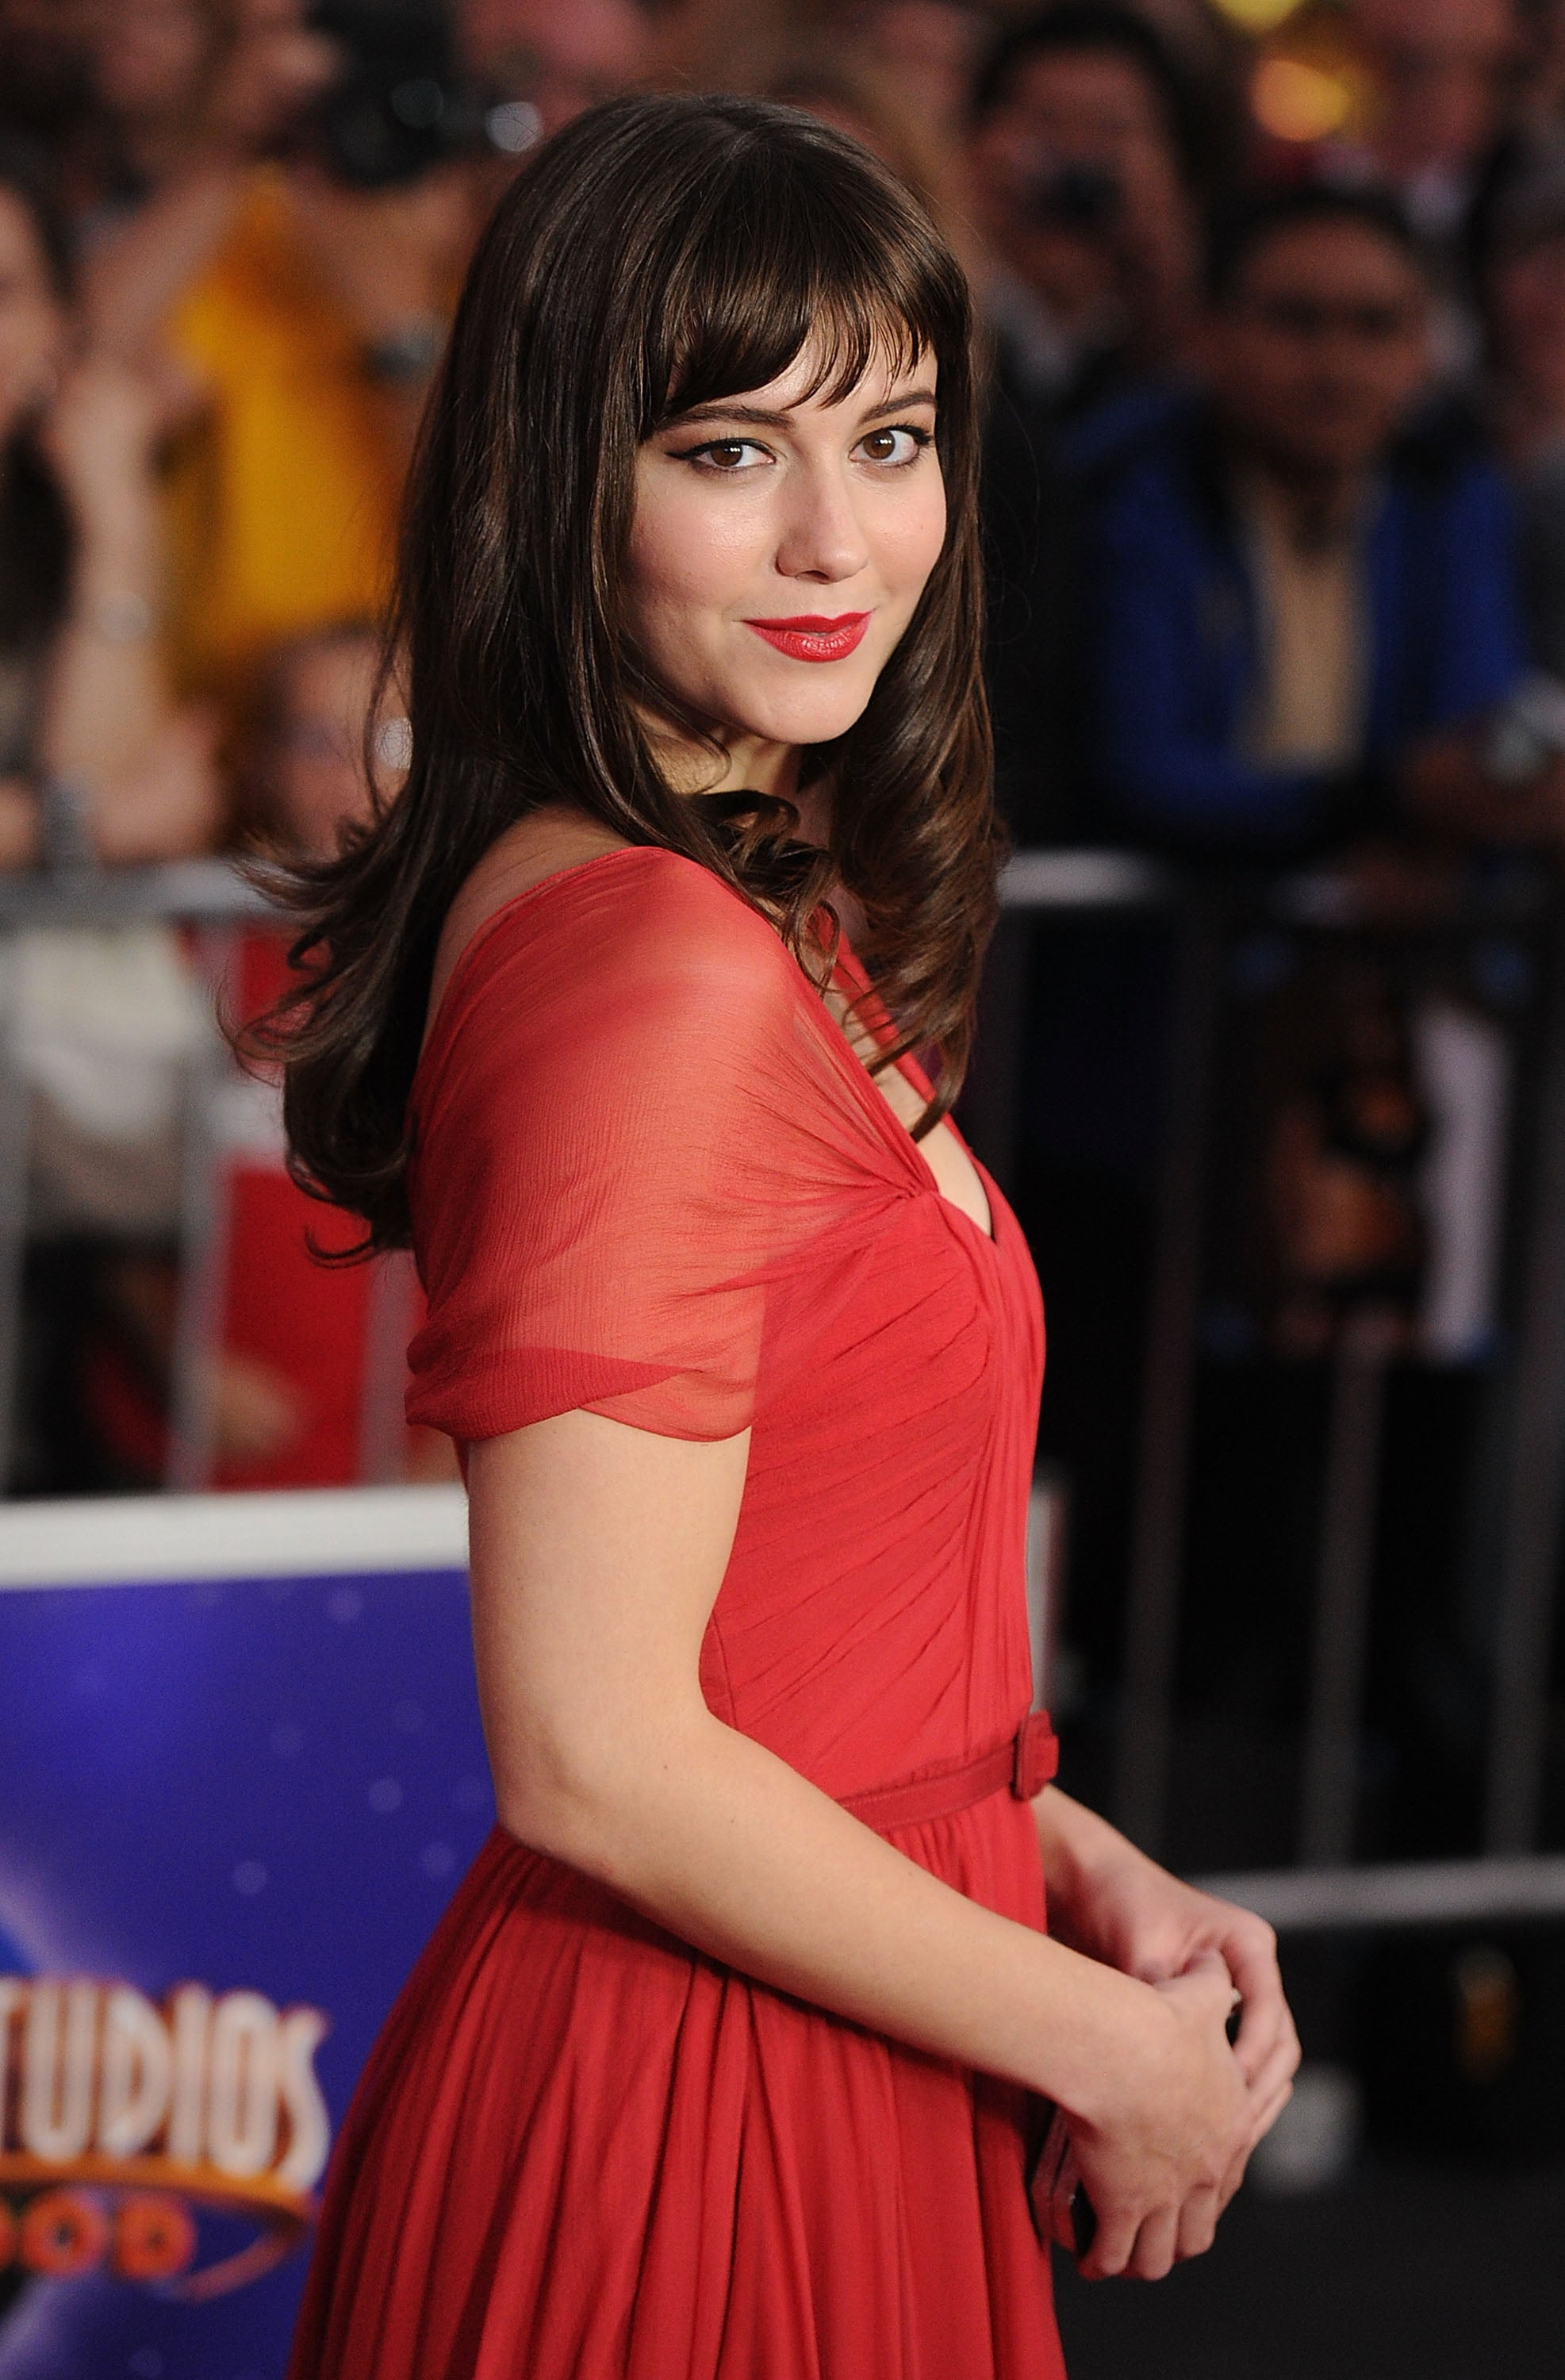 Mary Elizabeth Winstead at The Thing's LA premiere.